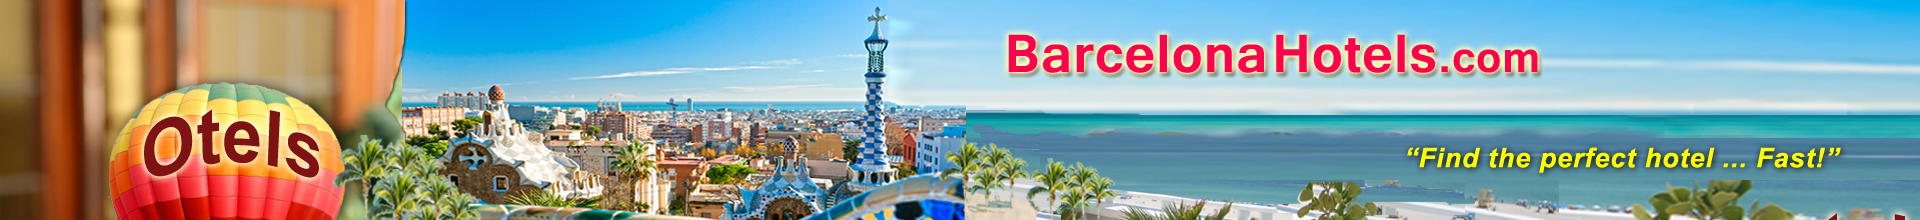 Barcelona Hotels and Tourism Ideas